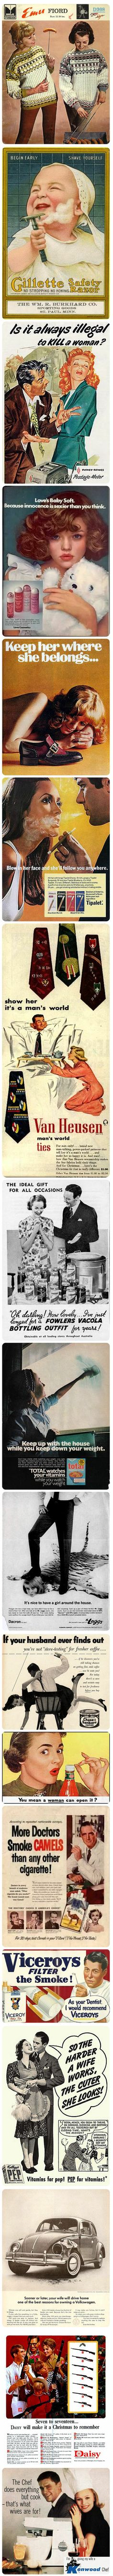 Oh boy!    Vintage Advertisements That Would Totally Be Banned Today